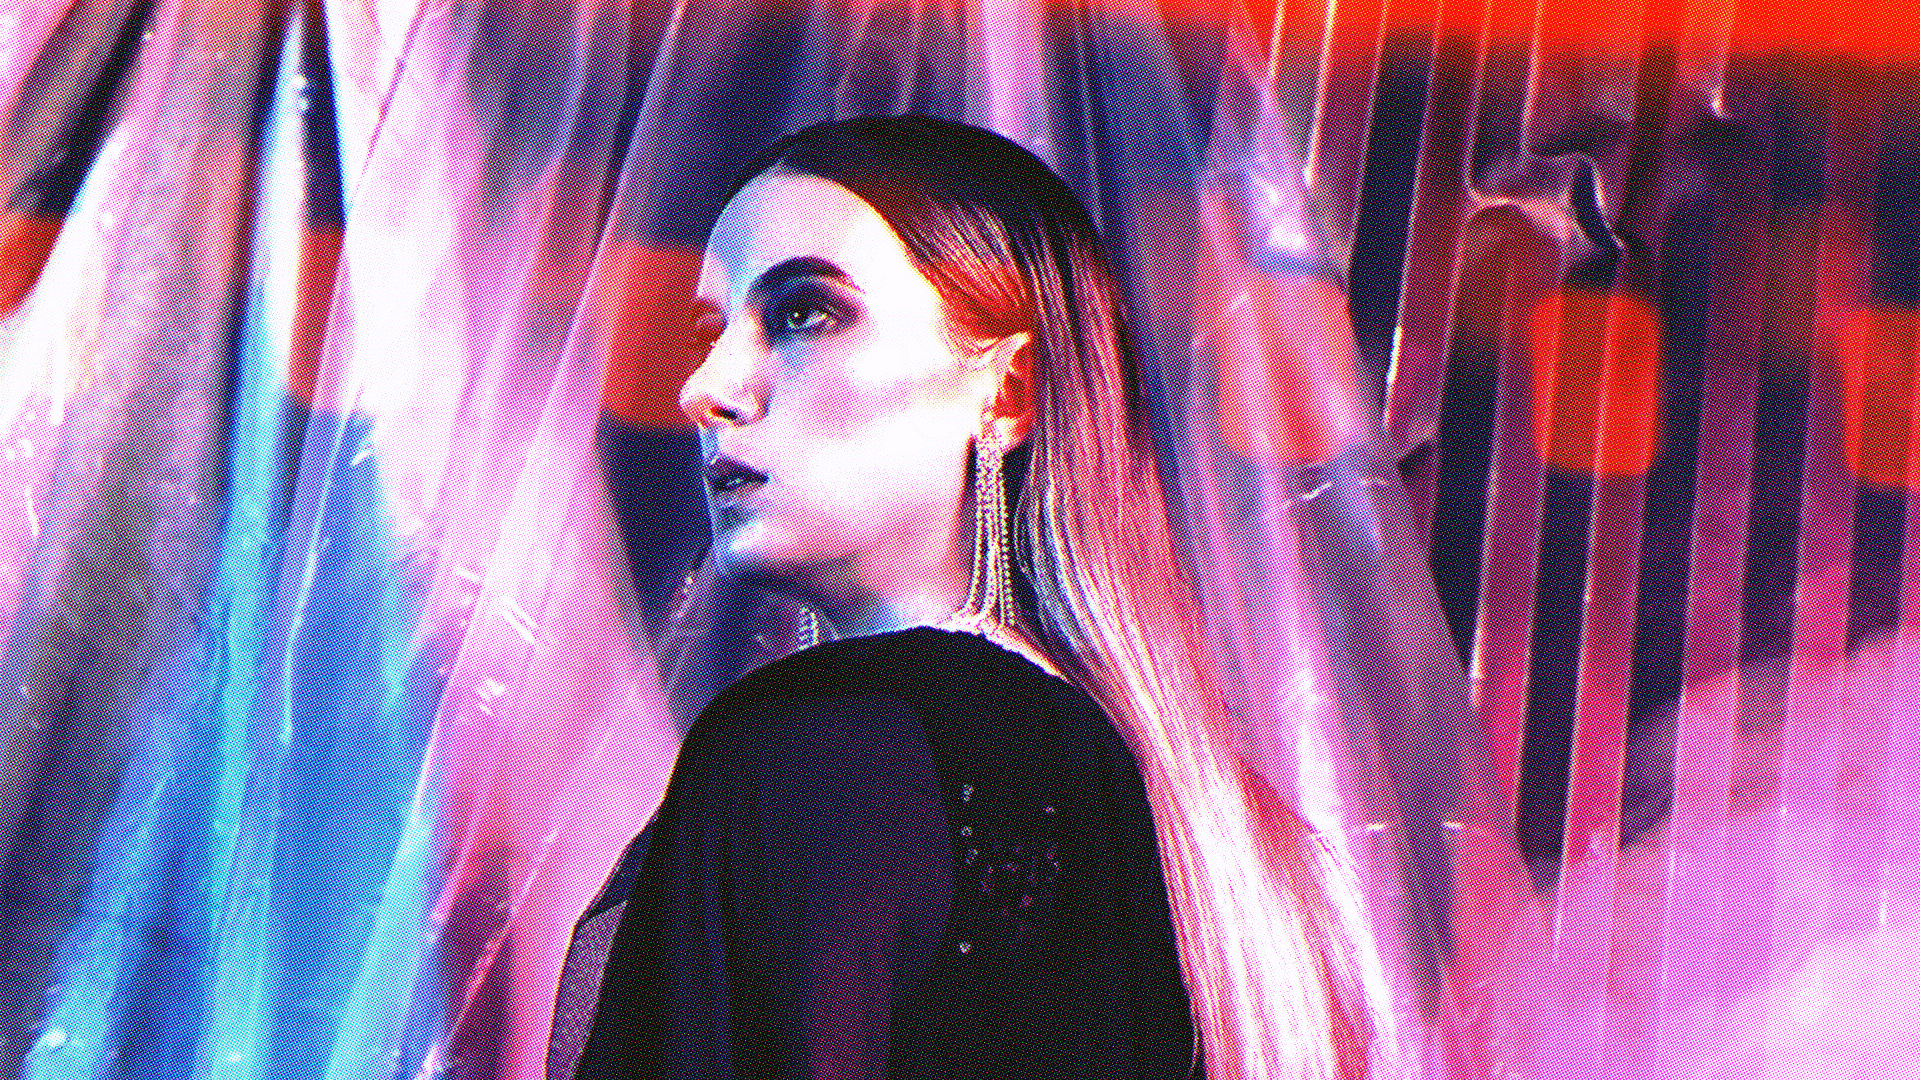 Natalie Wynn / Contrapoints